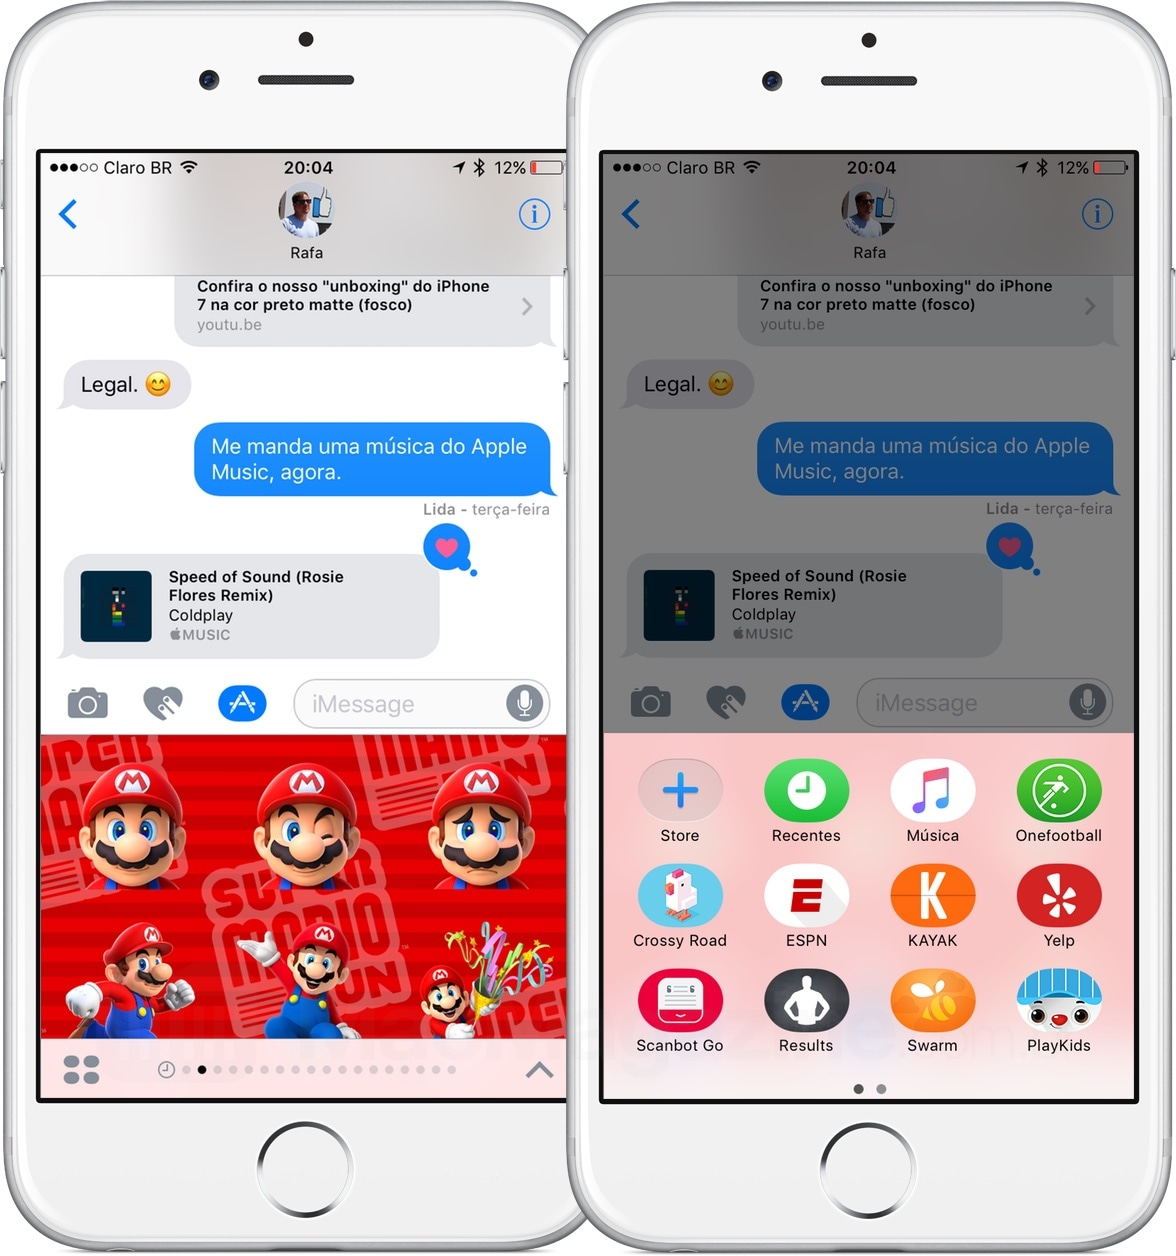 Loja dentro do iMessage do iOS 10